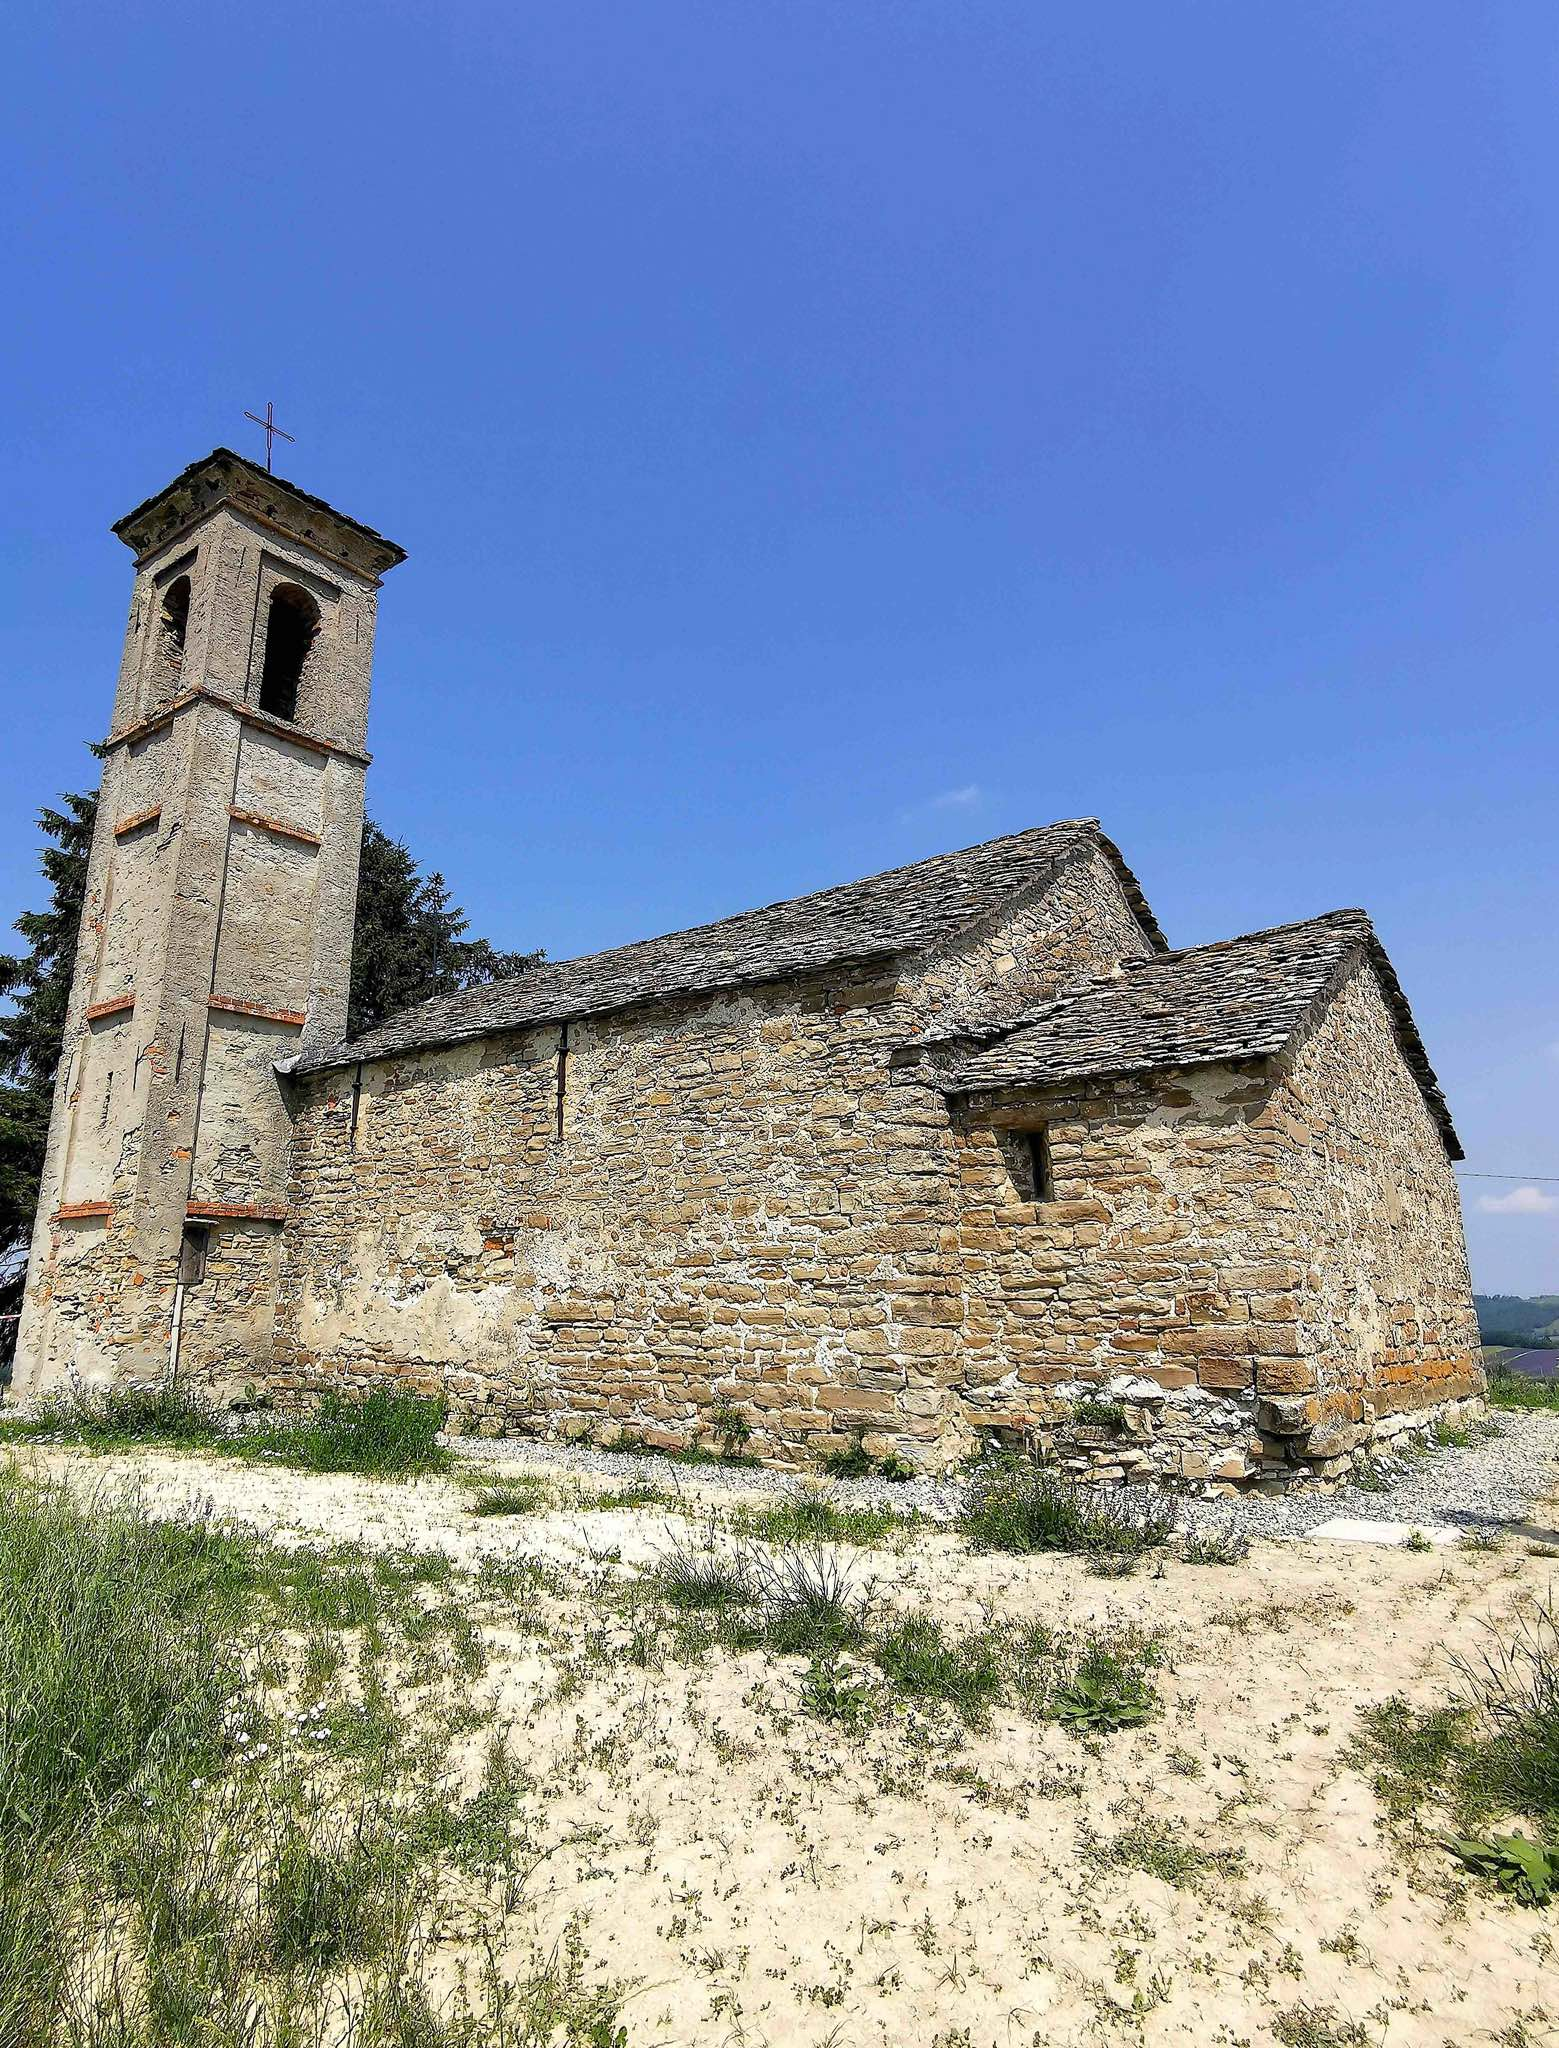 The Chapel of St Anastasia in the village of Sale San Giovanni in Piedmont